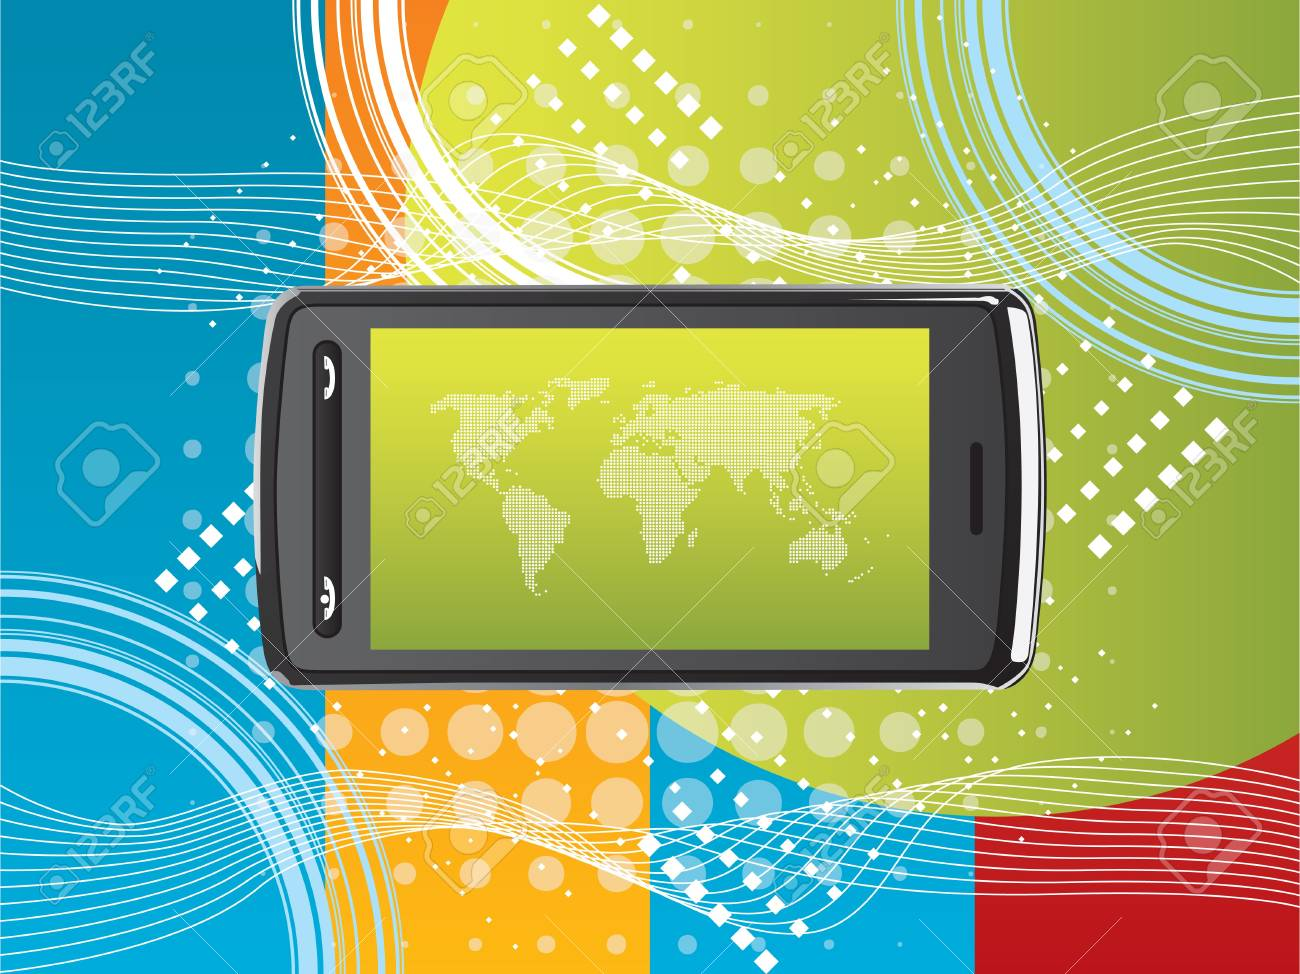 cell phone technology background Stock Vector - 7877338